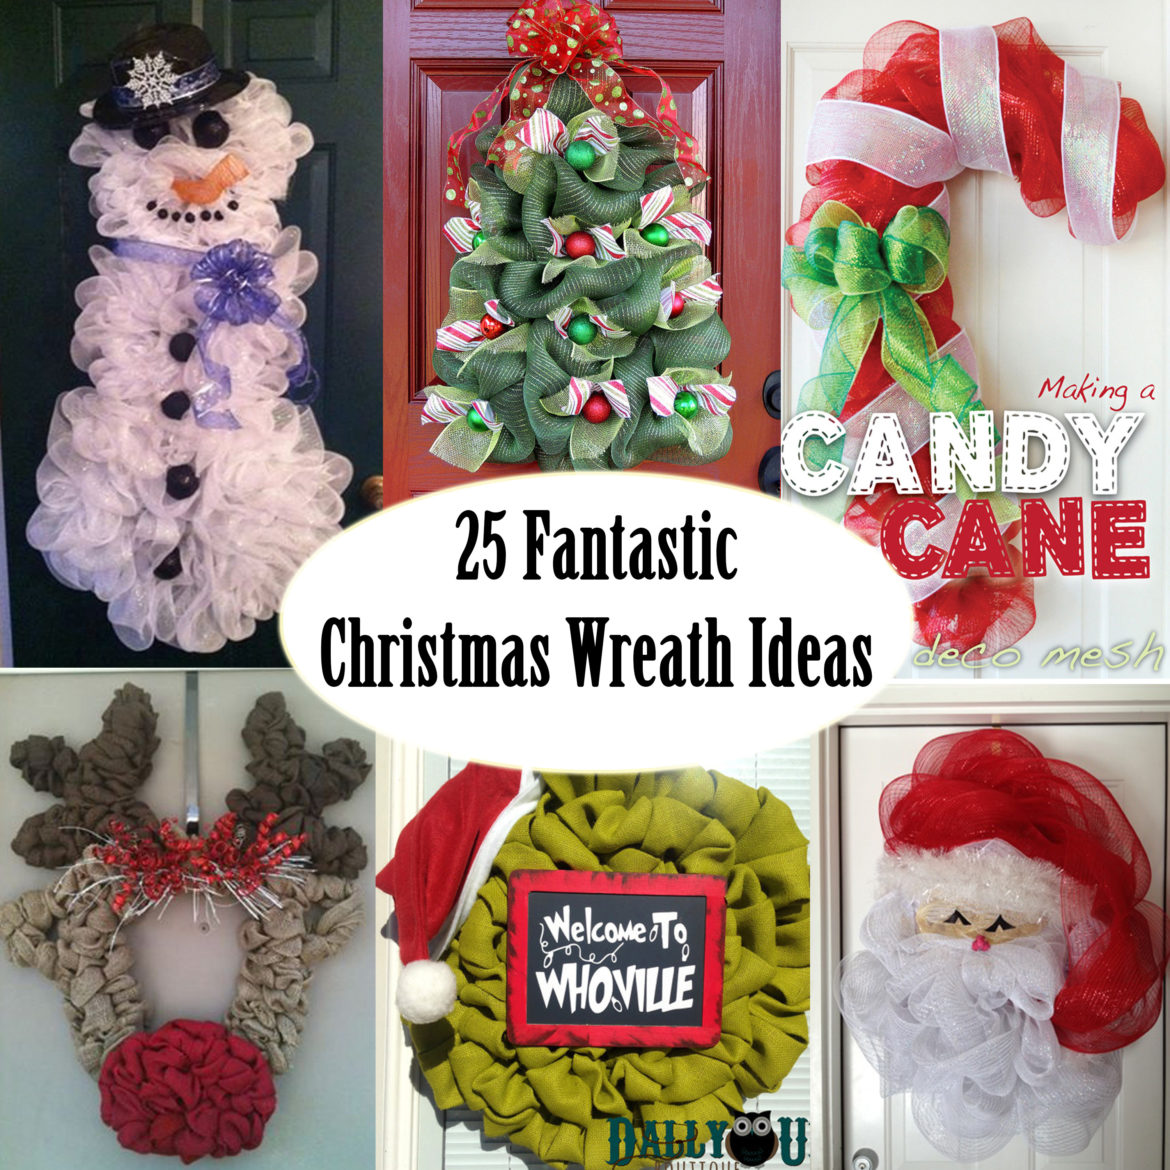 Creative Wreath Ideas: Unique Christmas Wreath Ideas